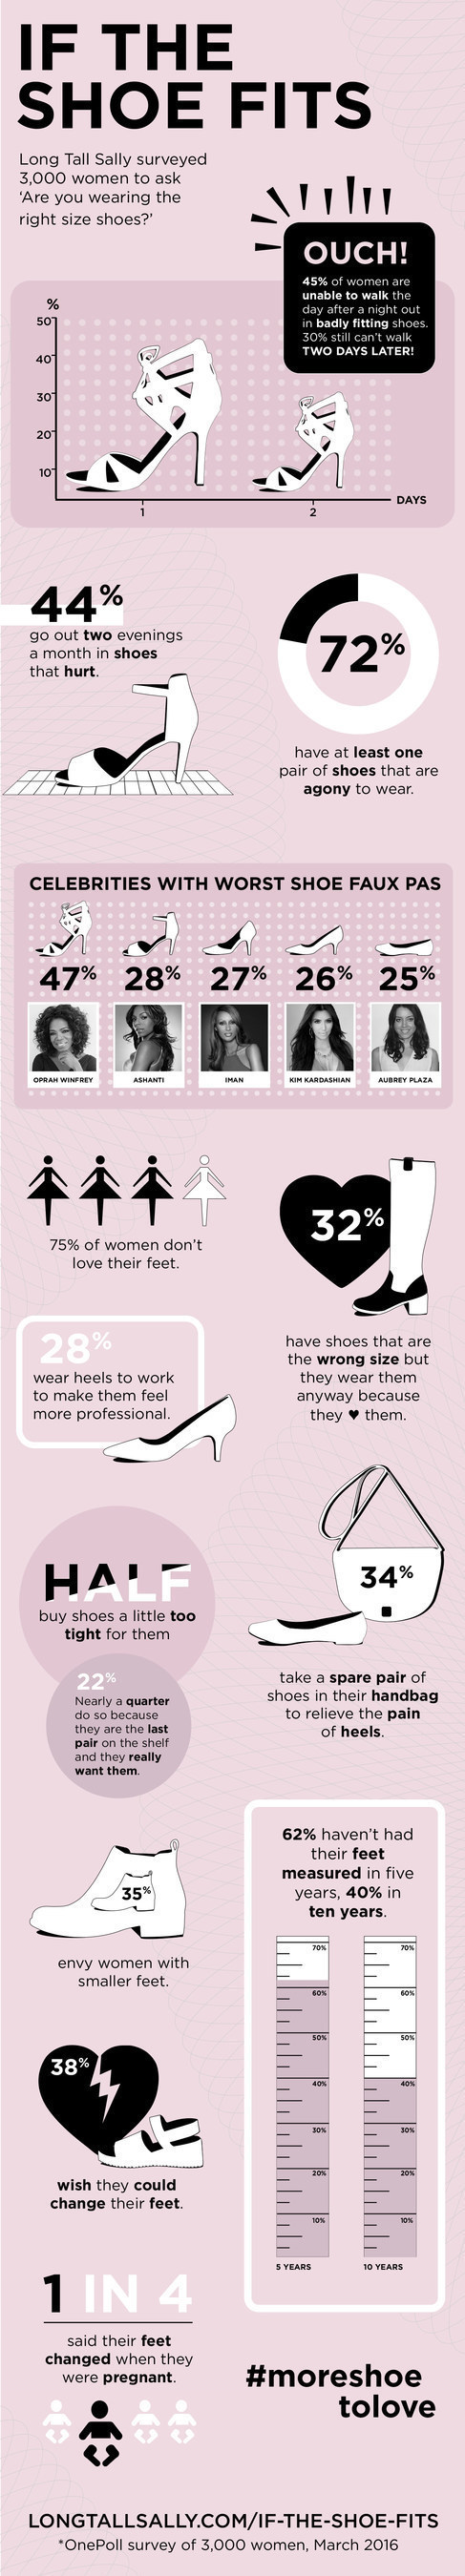 """Long Tall Sally's """"If the Shoe Fits"""" survey asked 3,000 women about their shoe-wearing habits. More details at http://us.longtallsally.com/if-the-shoe-fits."""